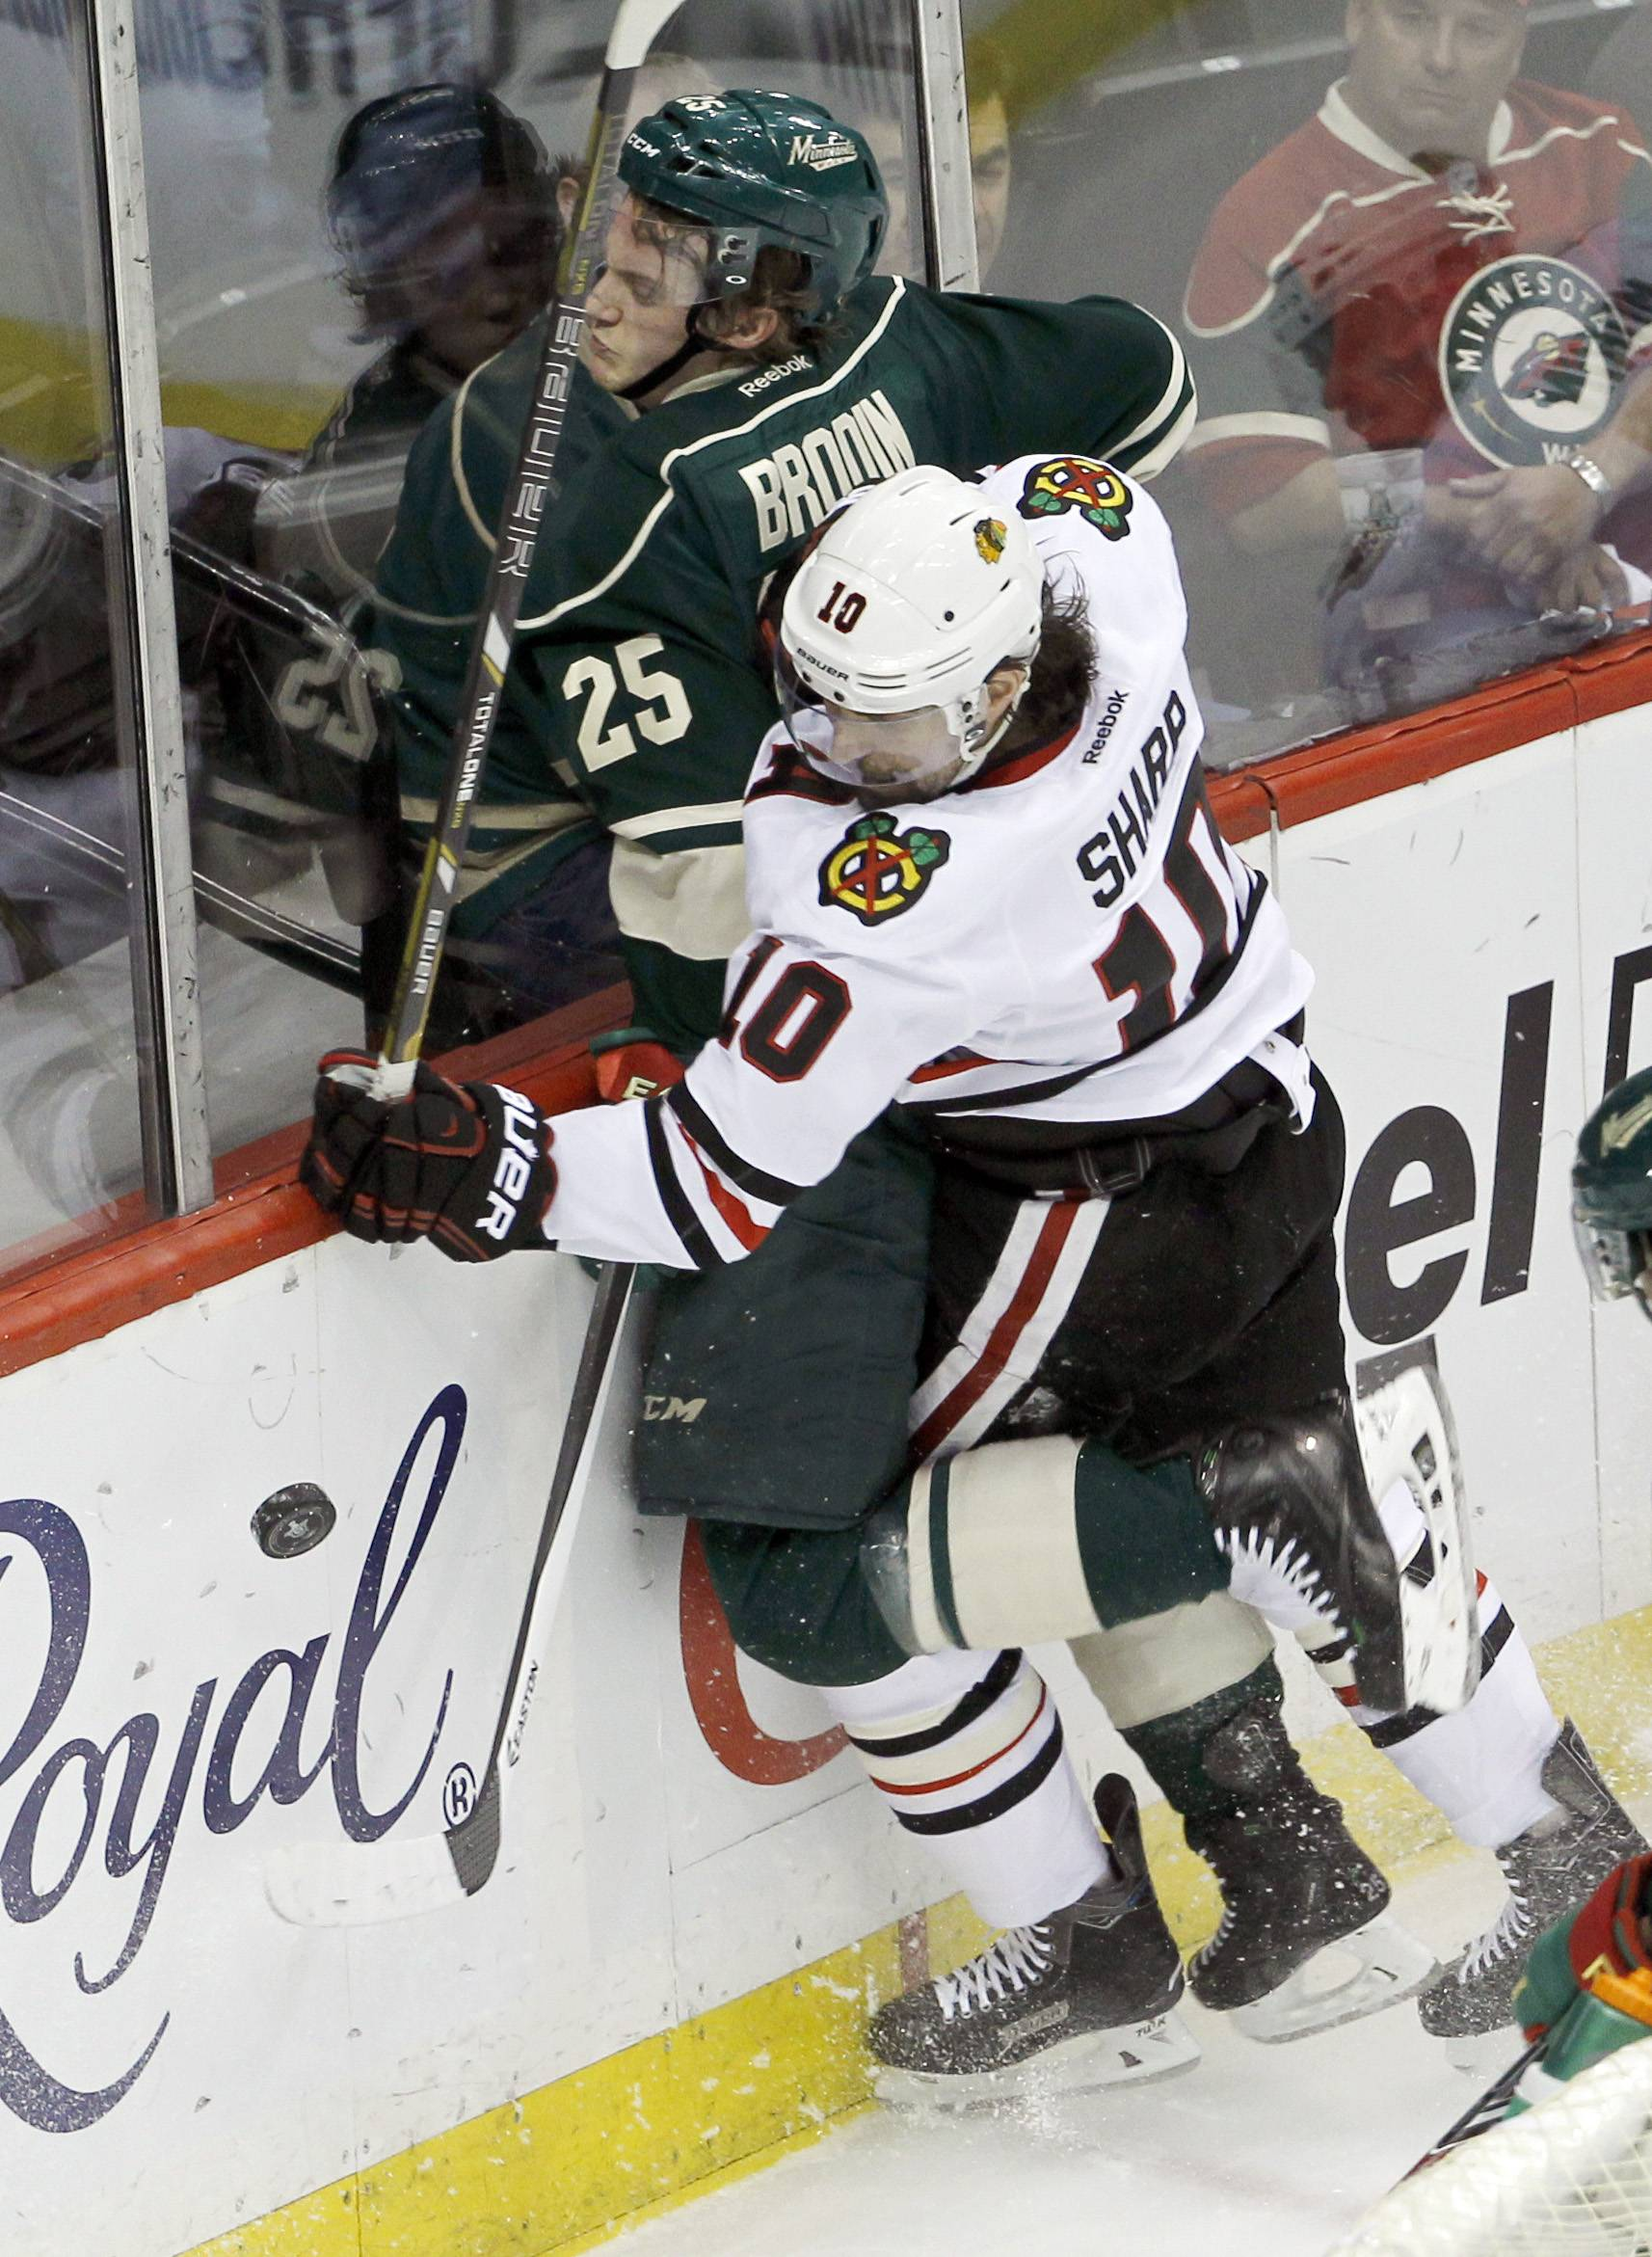 Chicago Blackhawks left wing Patrick Sharp (10) checks Minnesota Wild defenseman Jonas Brodin (25) into the boards as they battle for the puck during the first period.